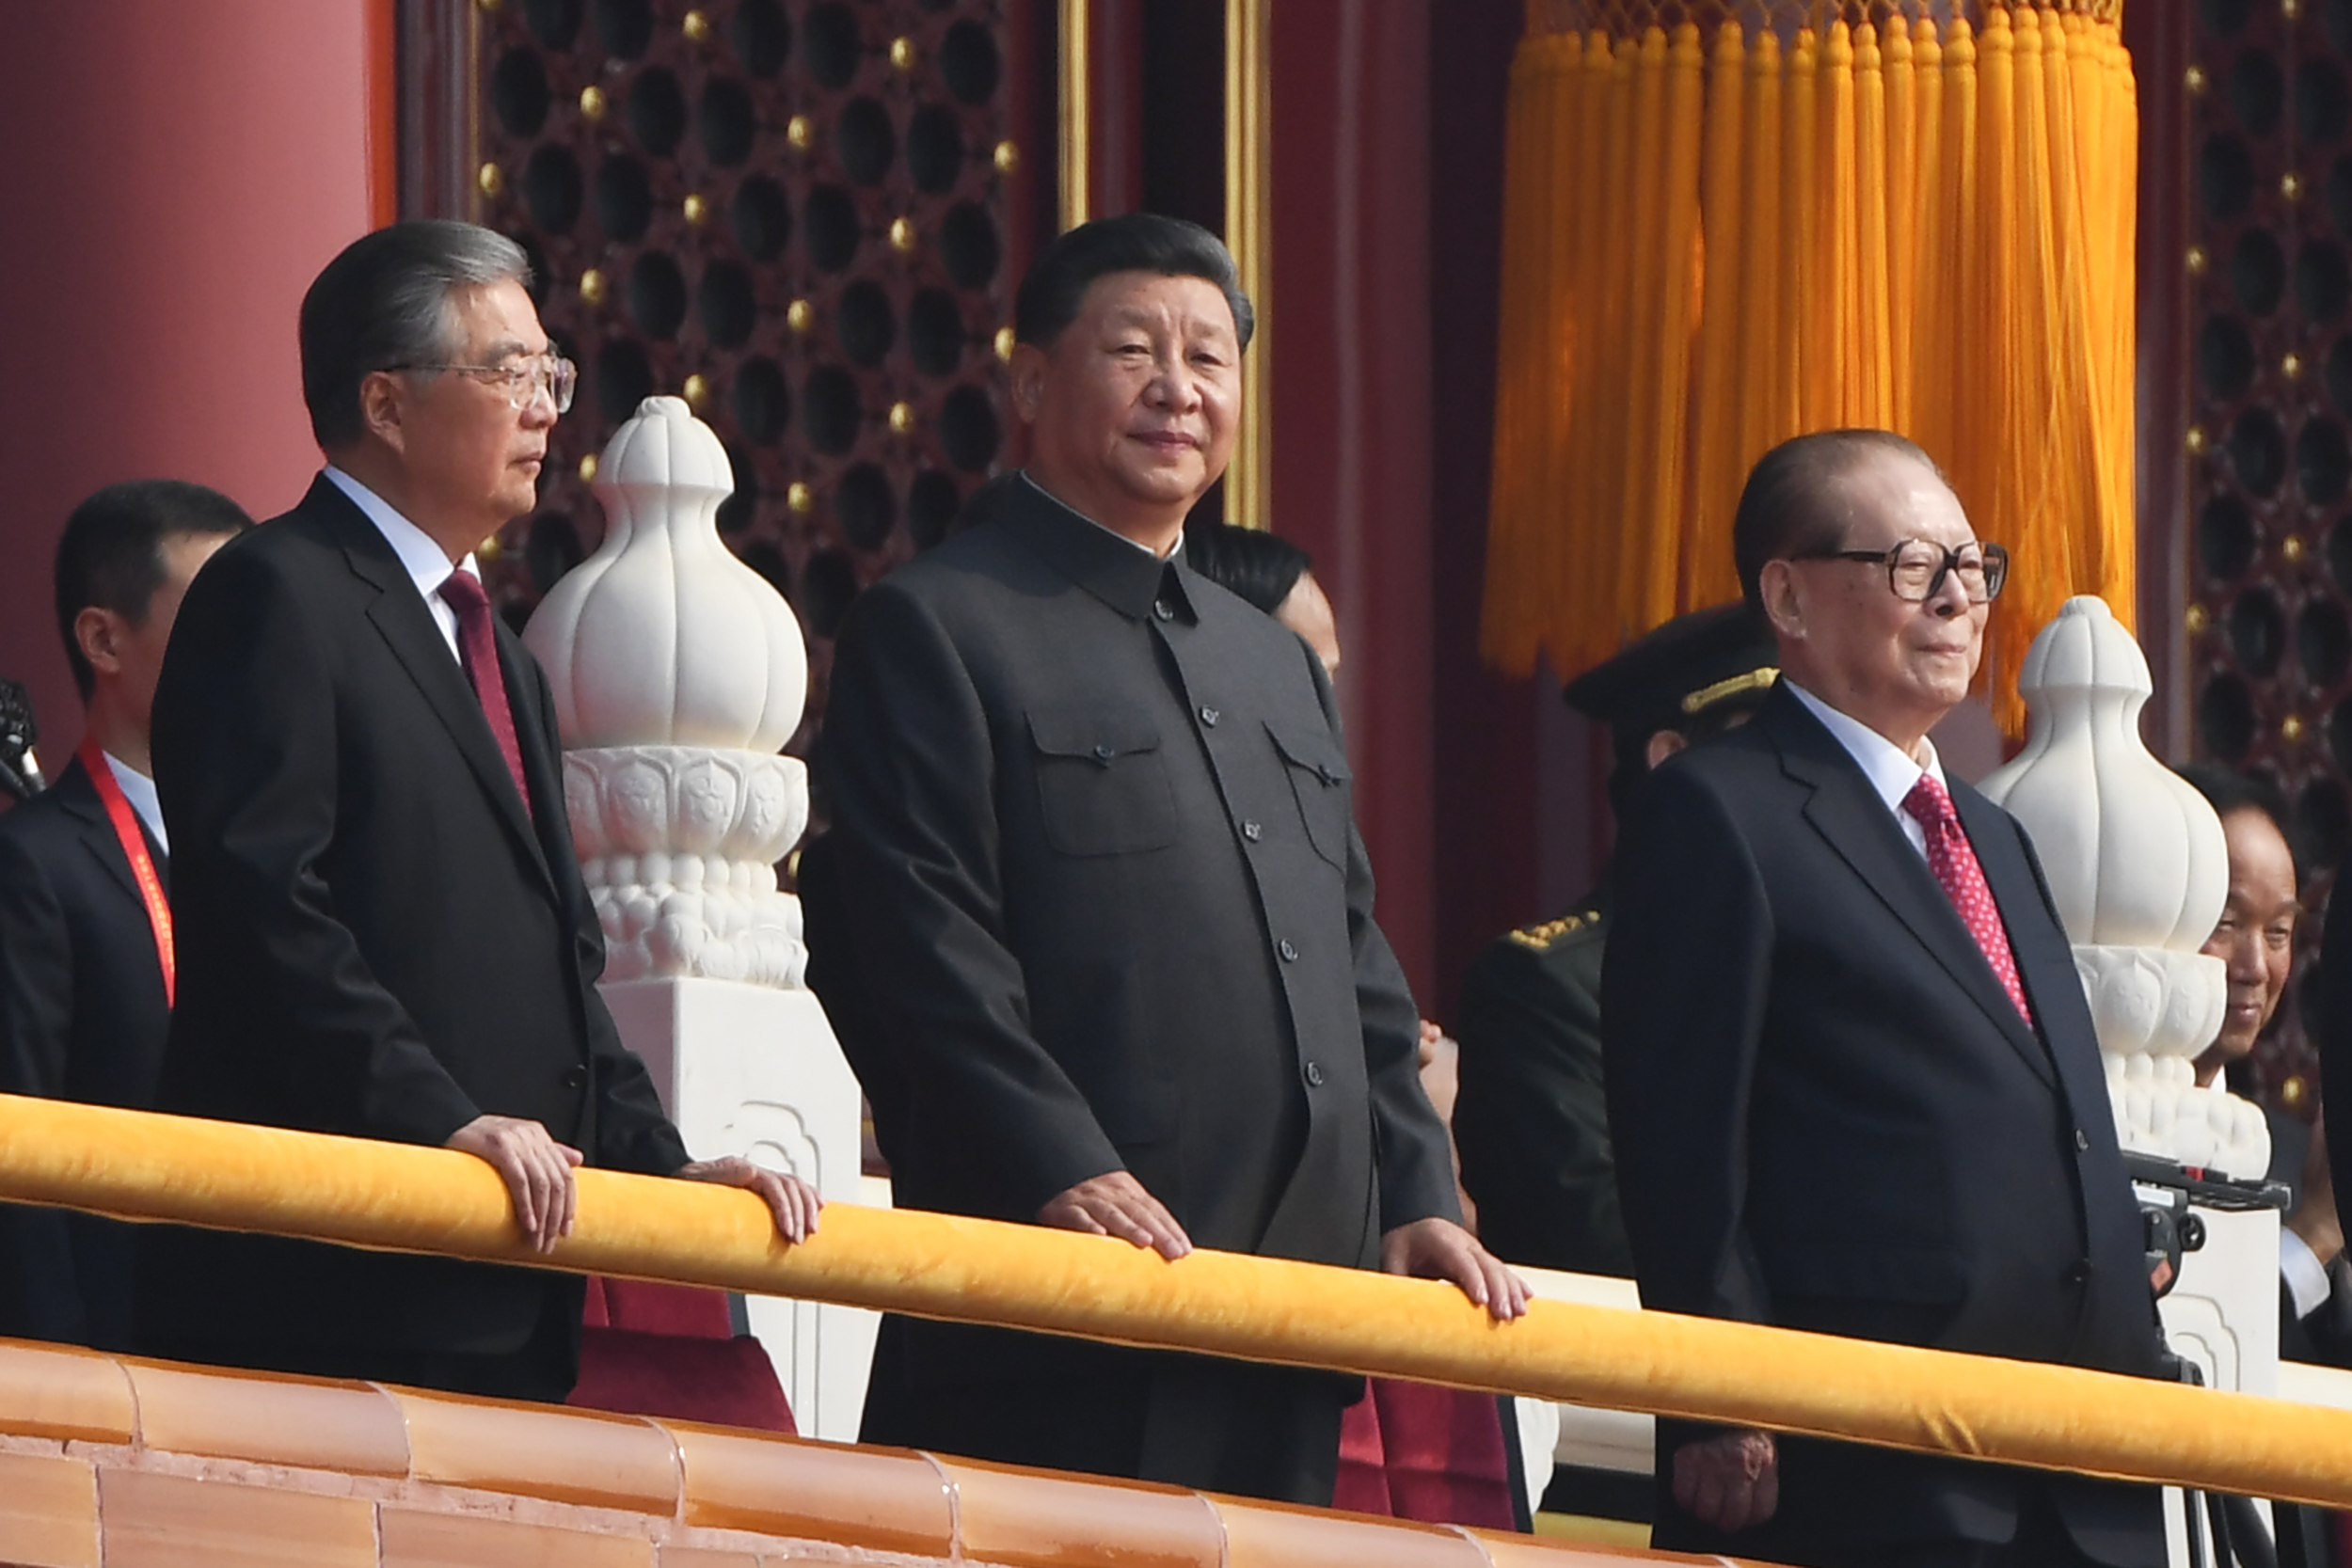 Chinese President Xi Jinping (center) in Tiananmen Square in Beijing on October 1, 2019.